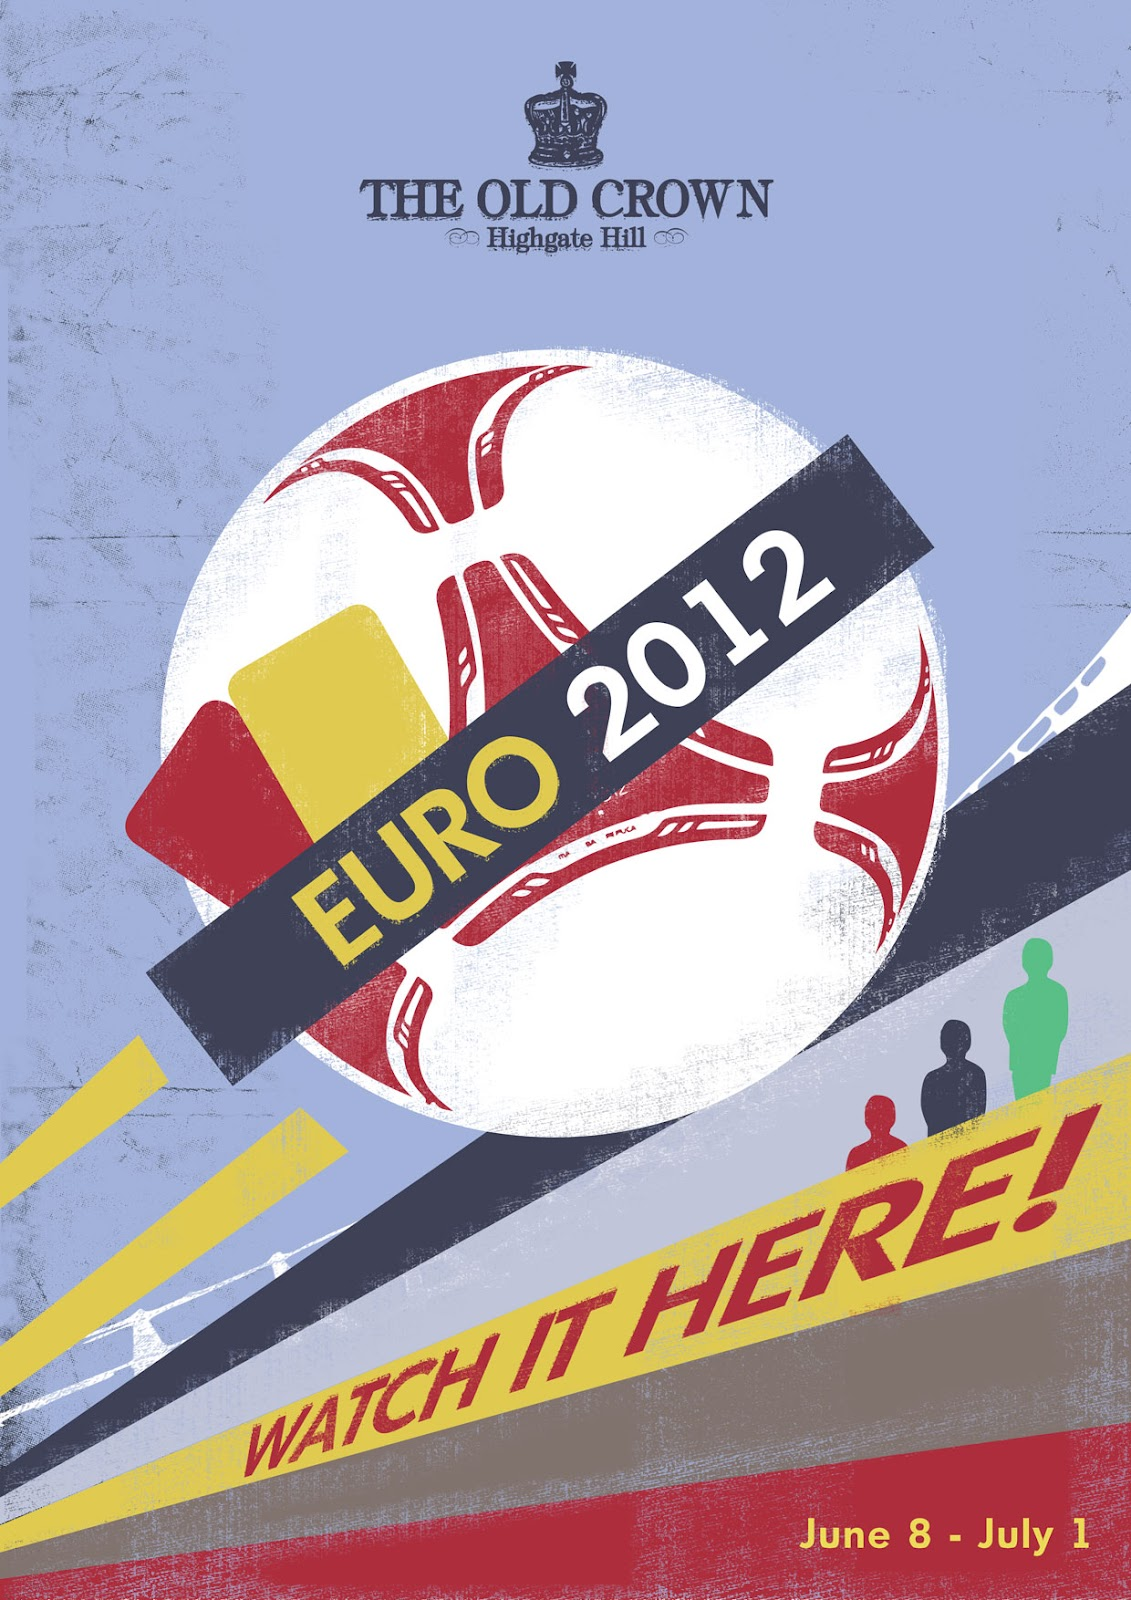 sports event poster juve cenitdelacabrera co